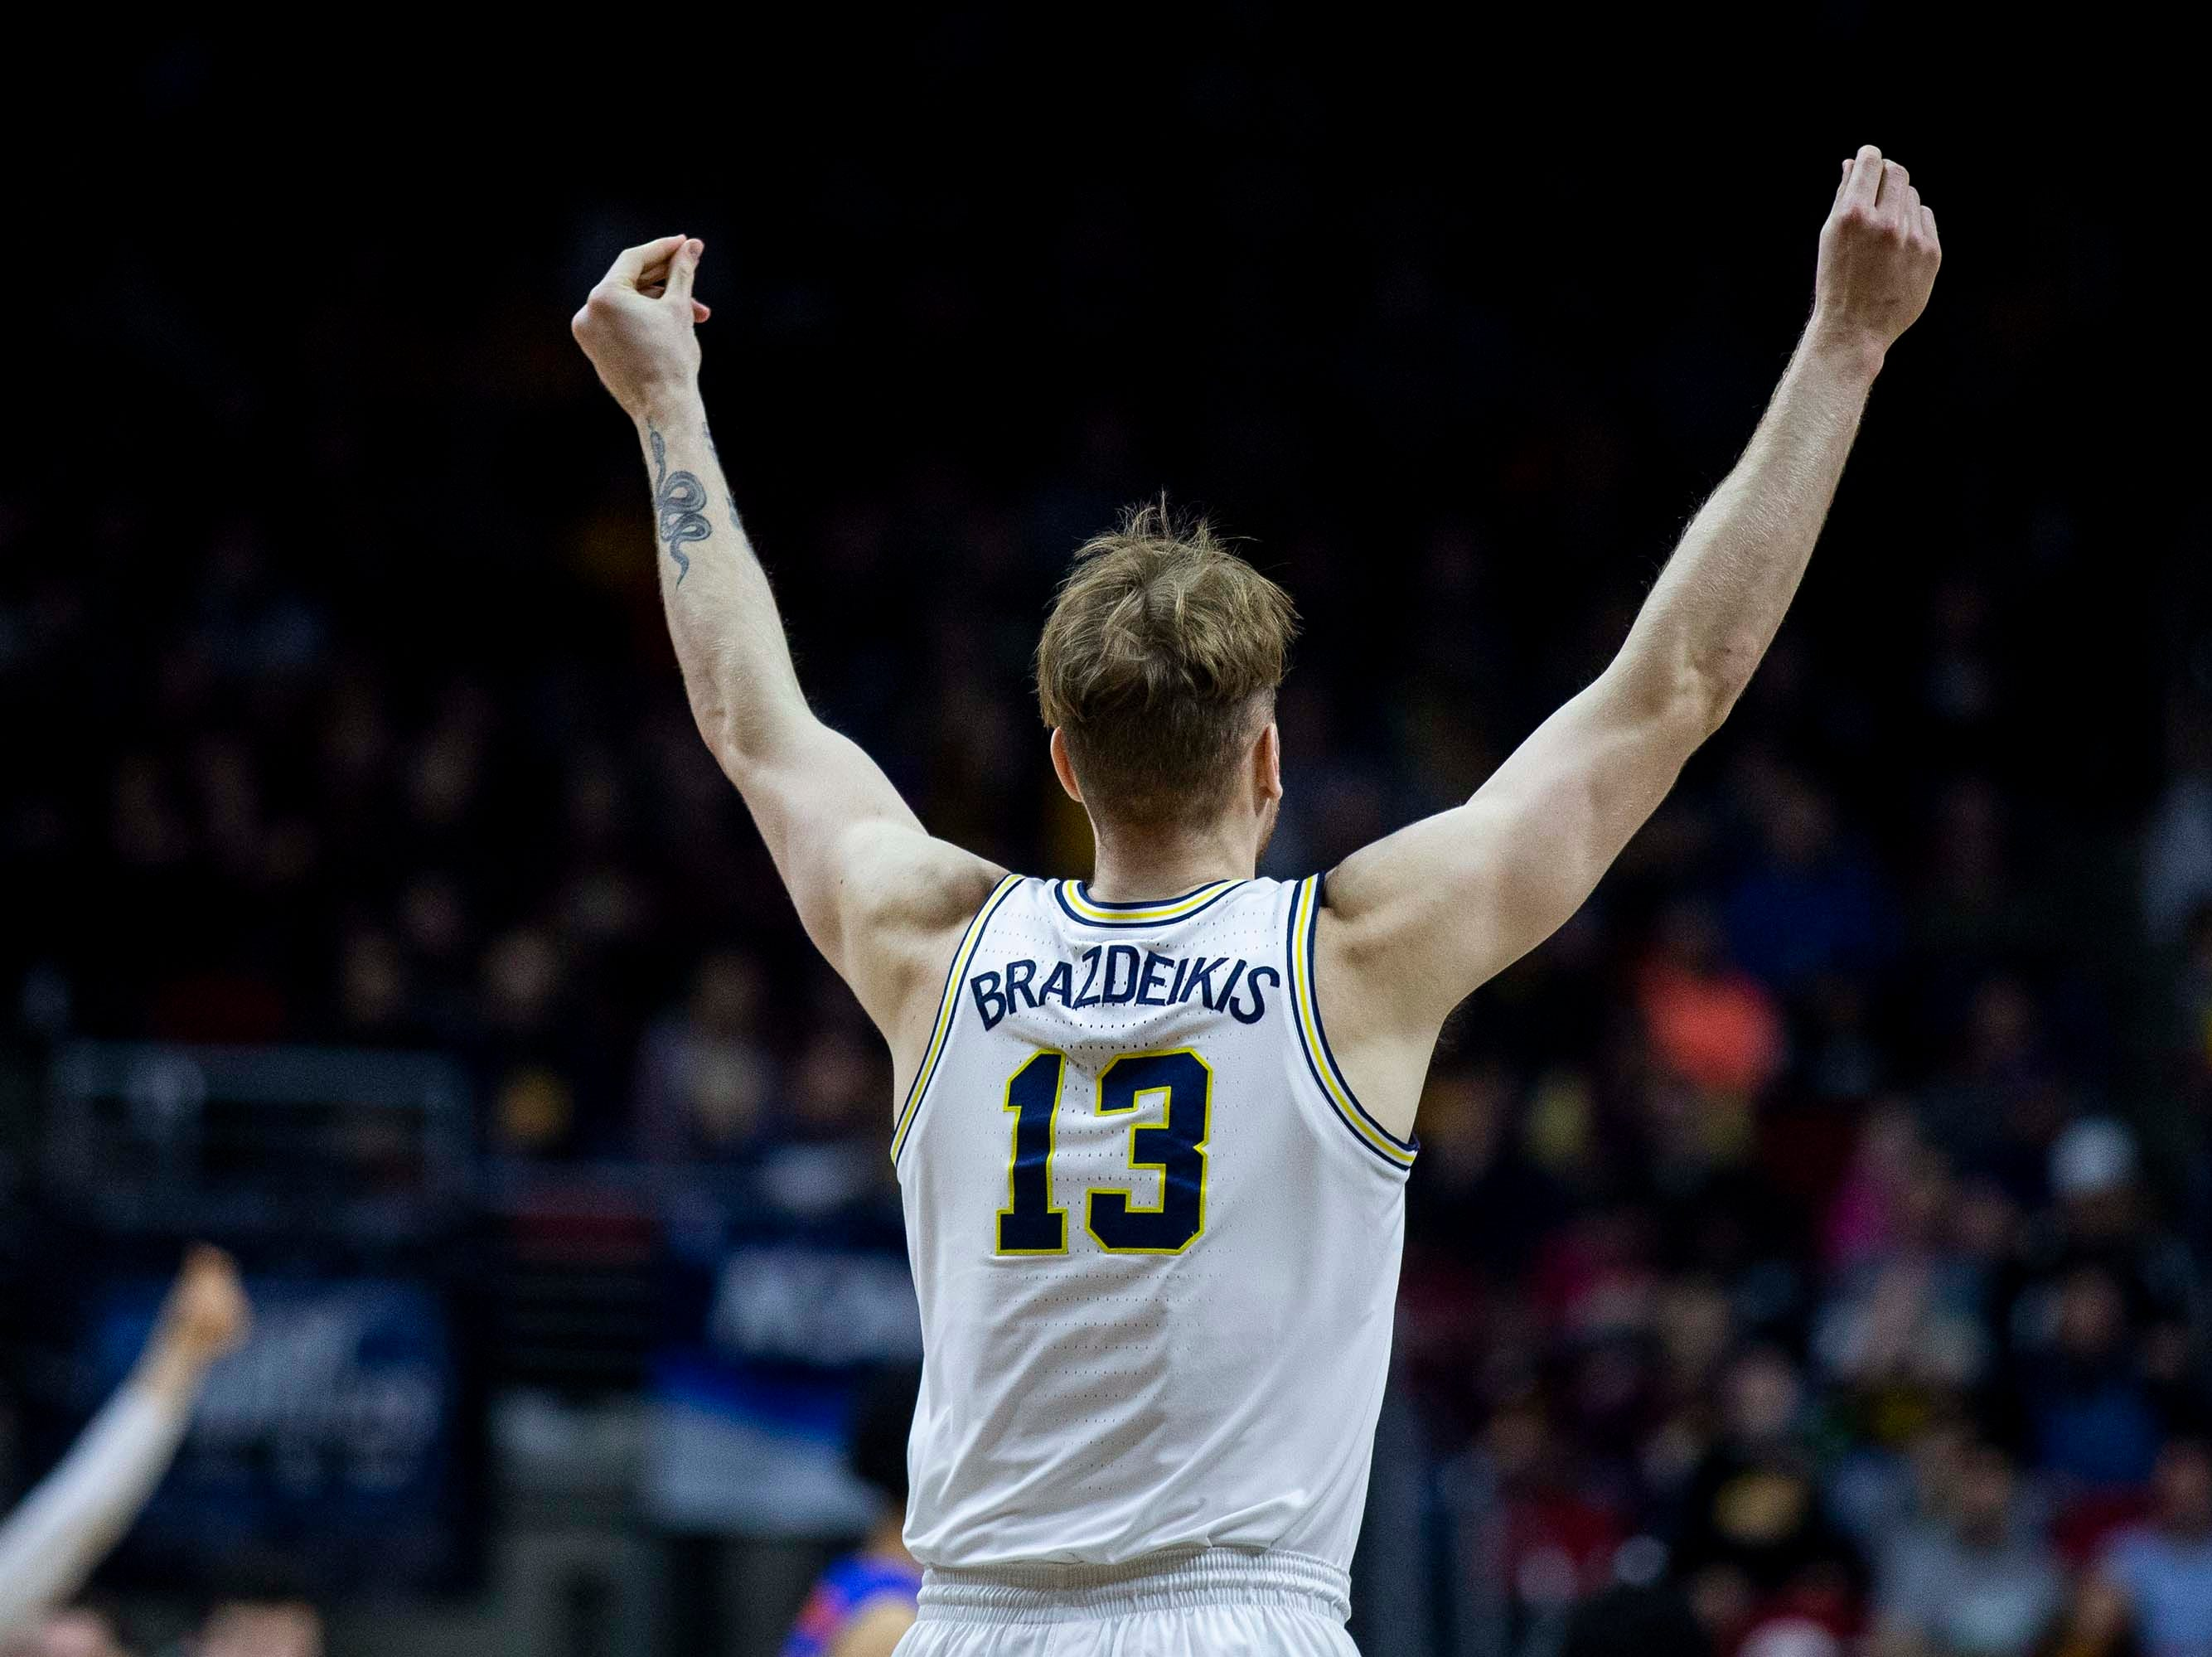 Michigan's Ignas Brazdeikis celebrates after scoring during the NCAA Tournament second-round match-up between Michigan and Florida on Saturday, March 23, 2019, in Wells Fargo Arena in Des Moines, Iowa.